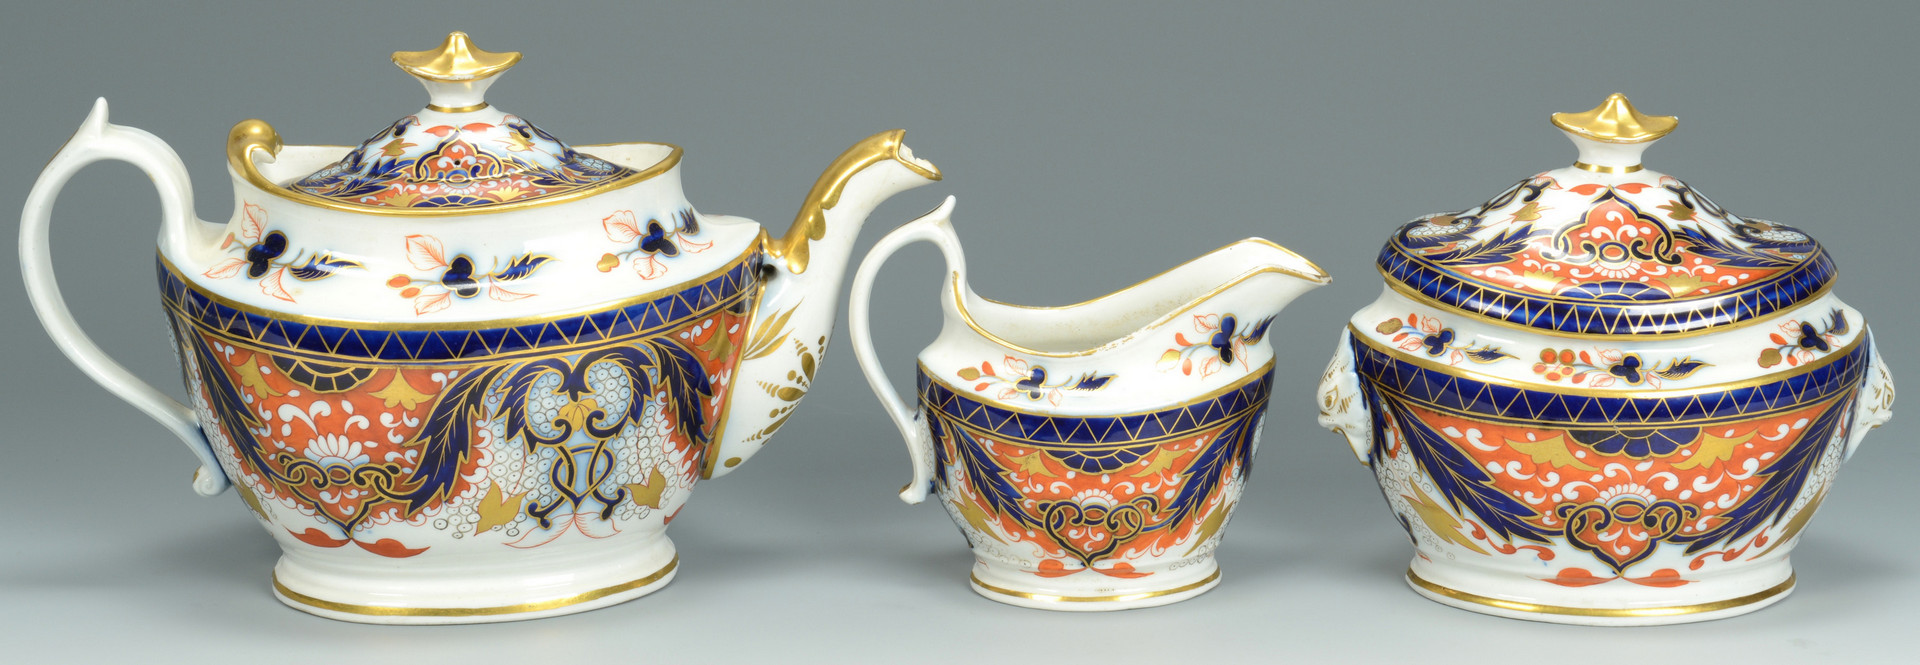 Lot 700: Dr. Wall Fan cup plus English Tea Service